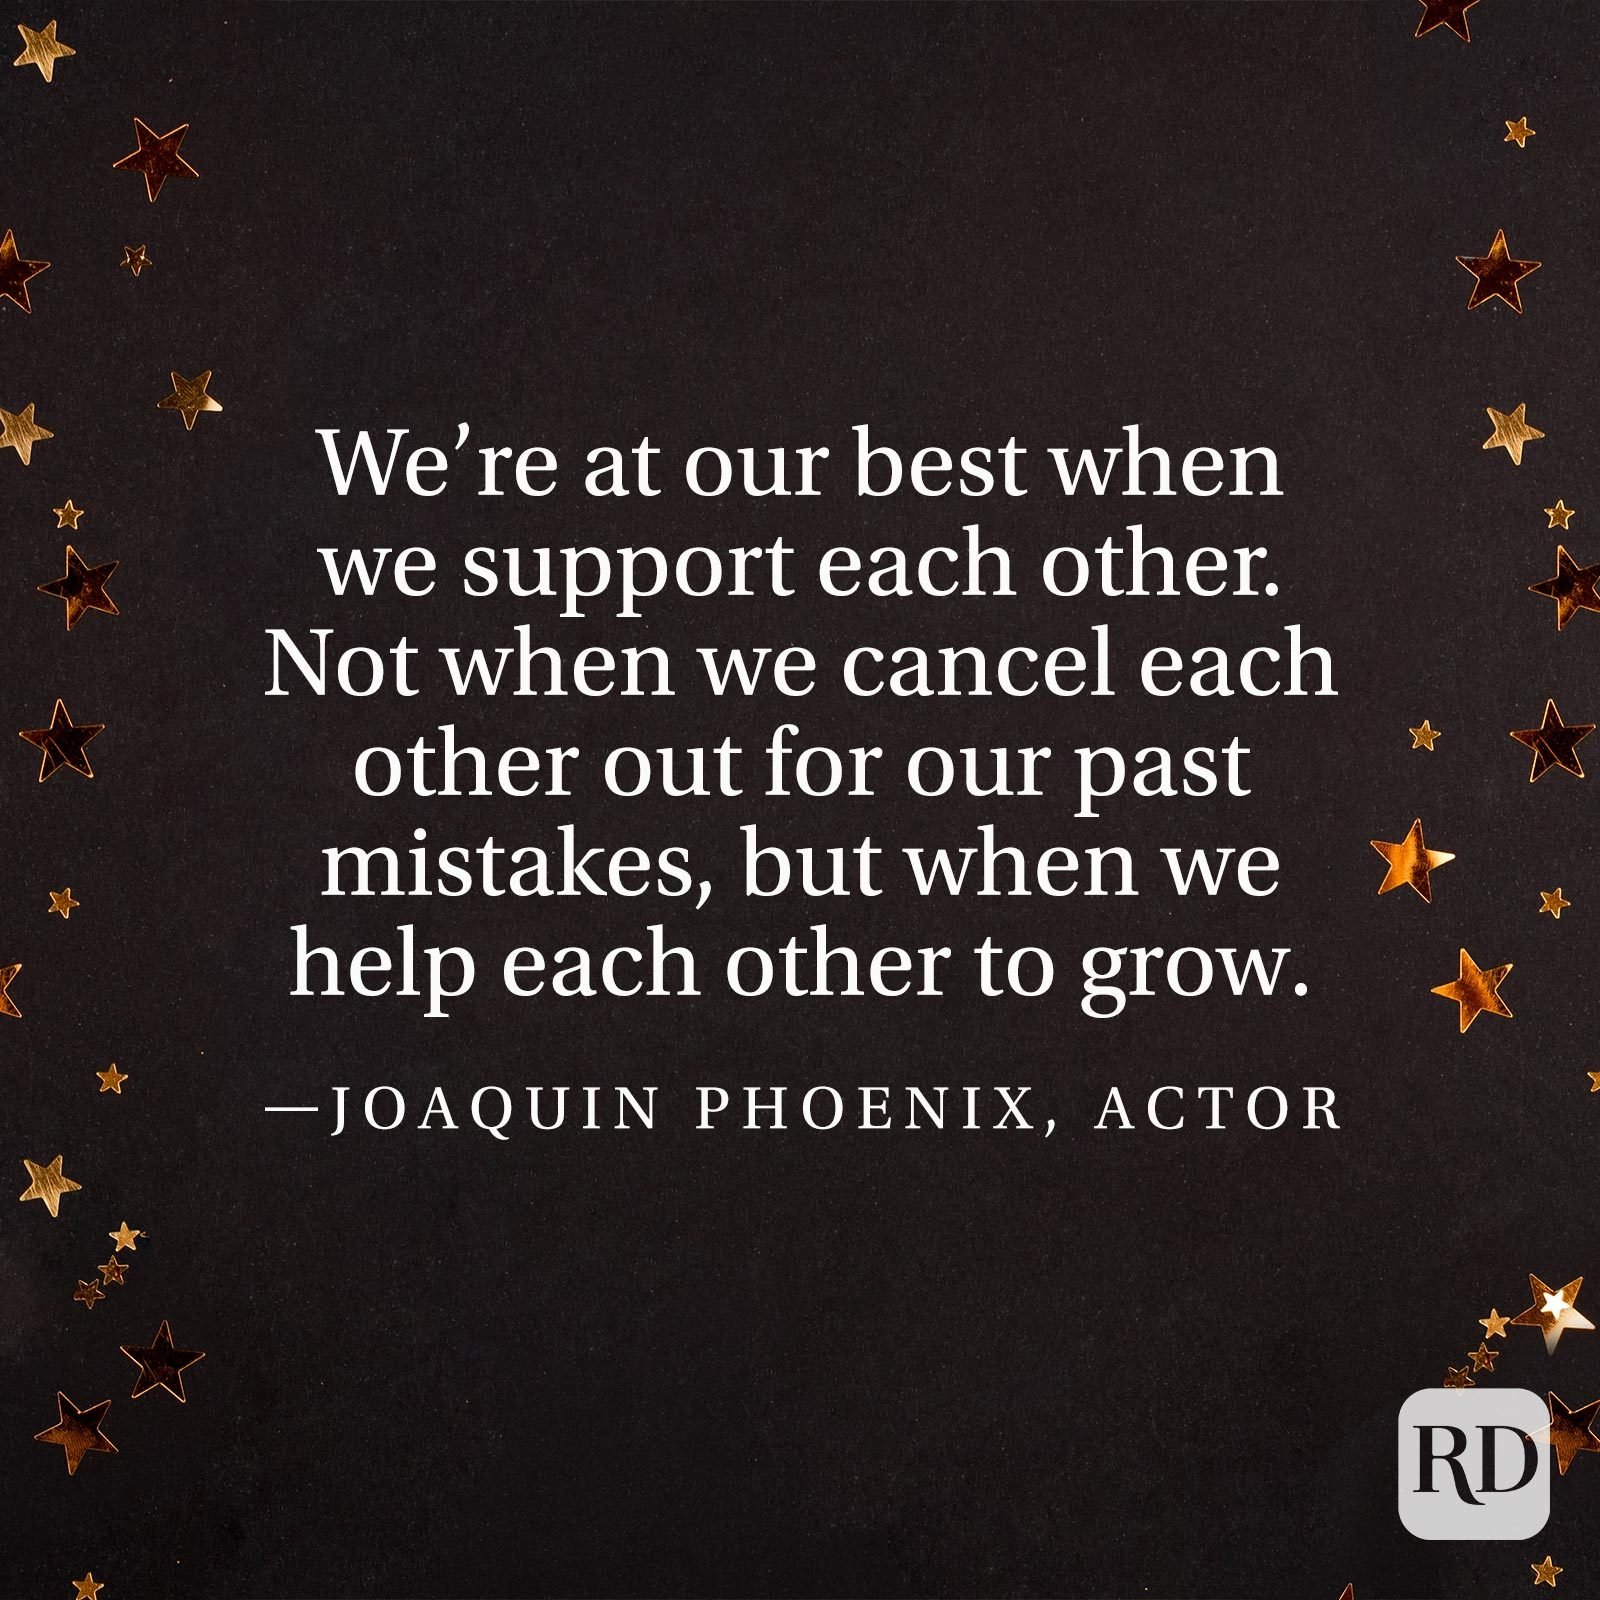 """We're at our best when we support each other. Not when we cancel each other out for our past mistakes, but when we help each other to grow."" —Joaquin Phoenix, actor"